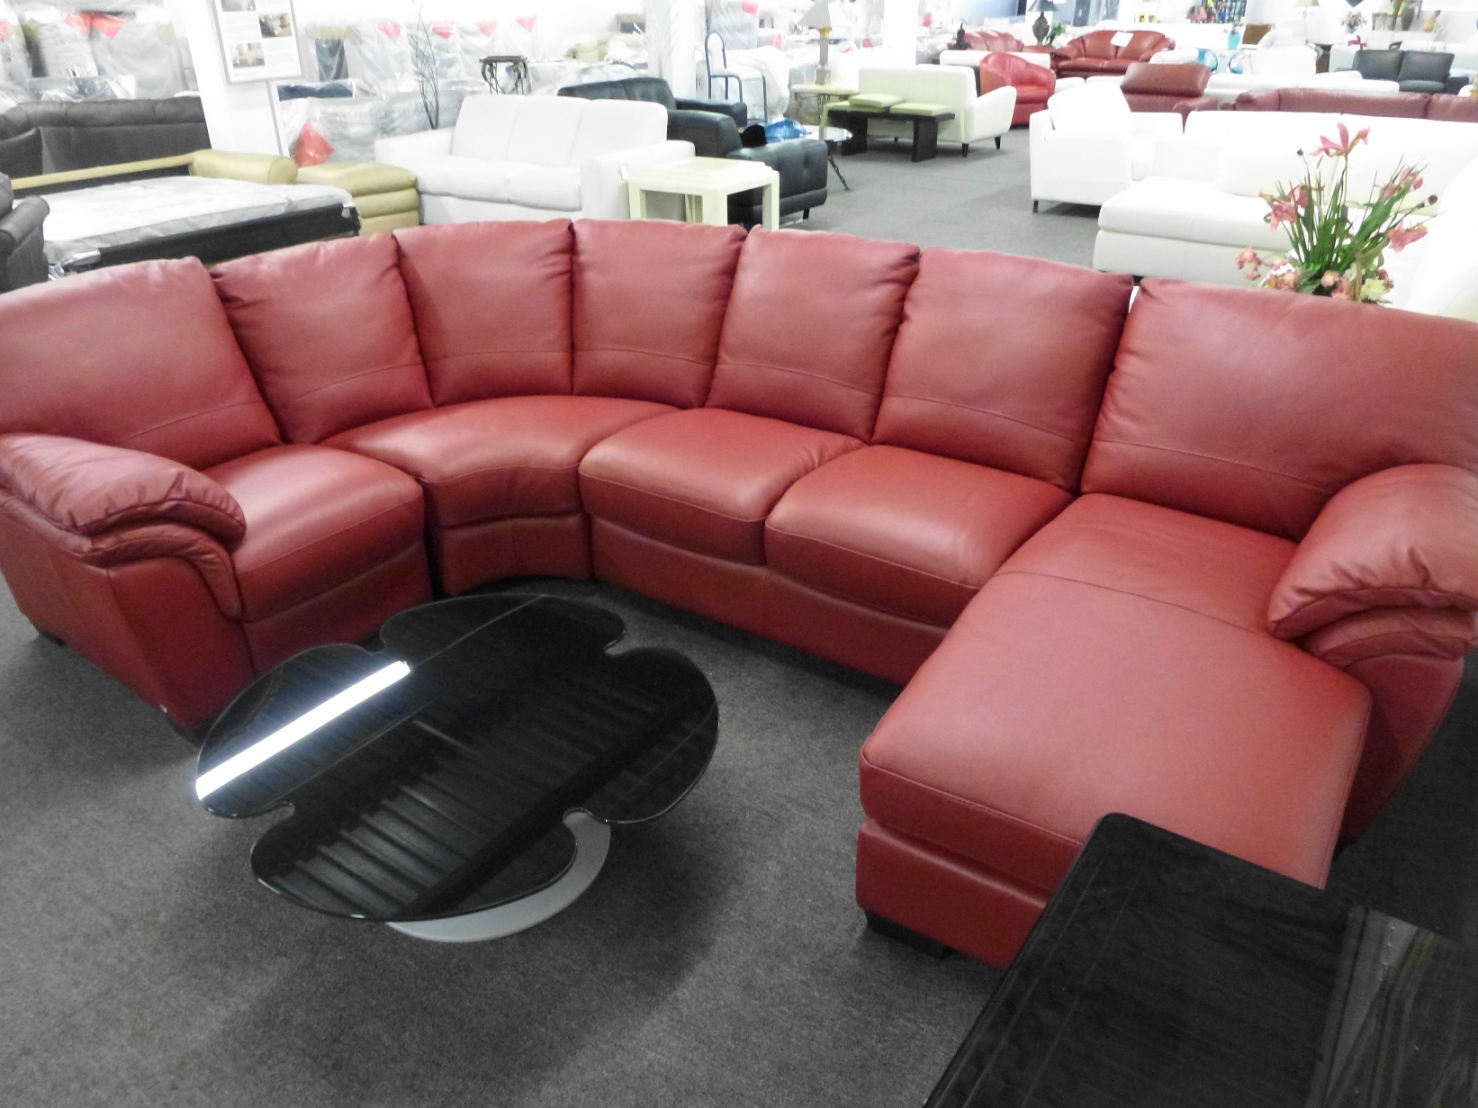 red sofas on sale 42 high sofa table natuzzi leather and sectionals by interior concepts